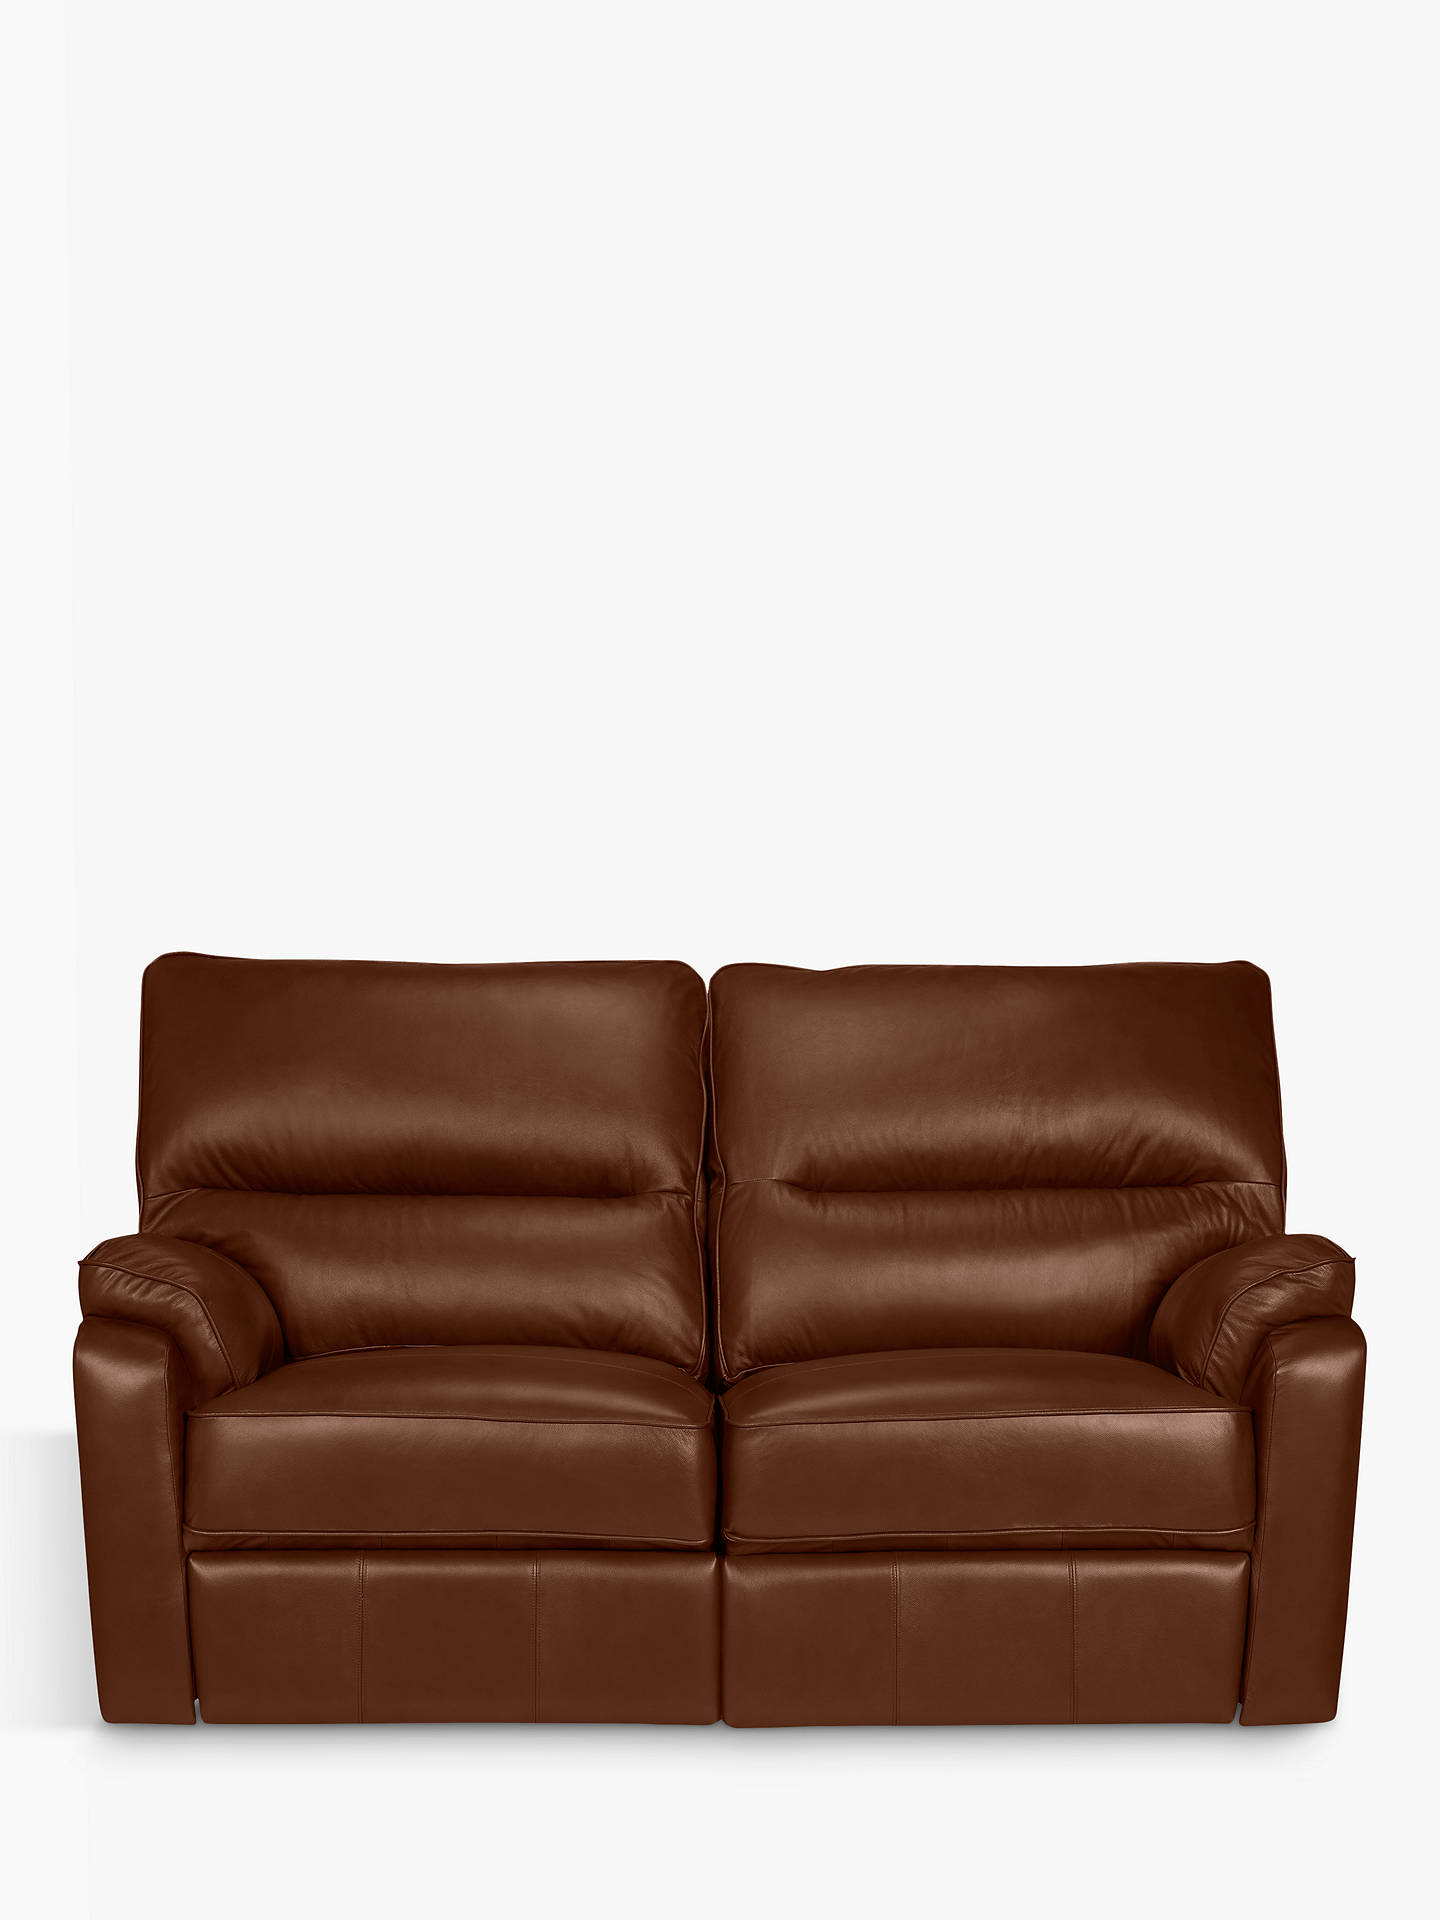 Buyjohn lewis partners carlisle small 2 seater power recliner leather sofa contempo castanga online